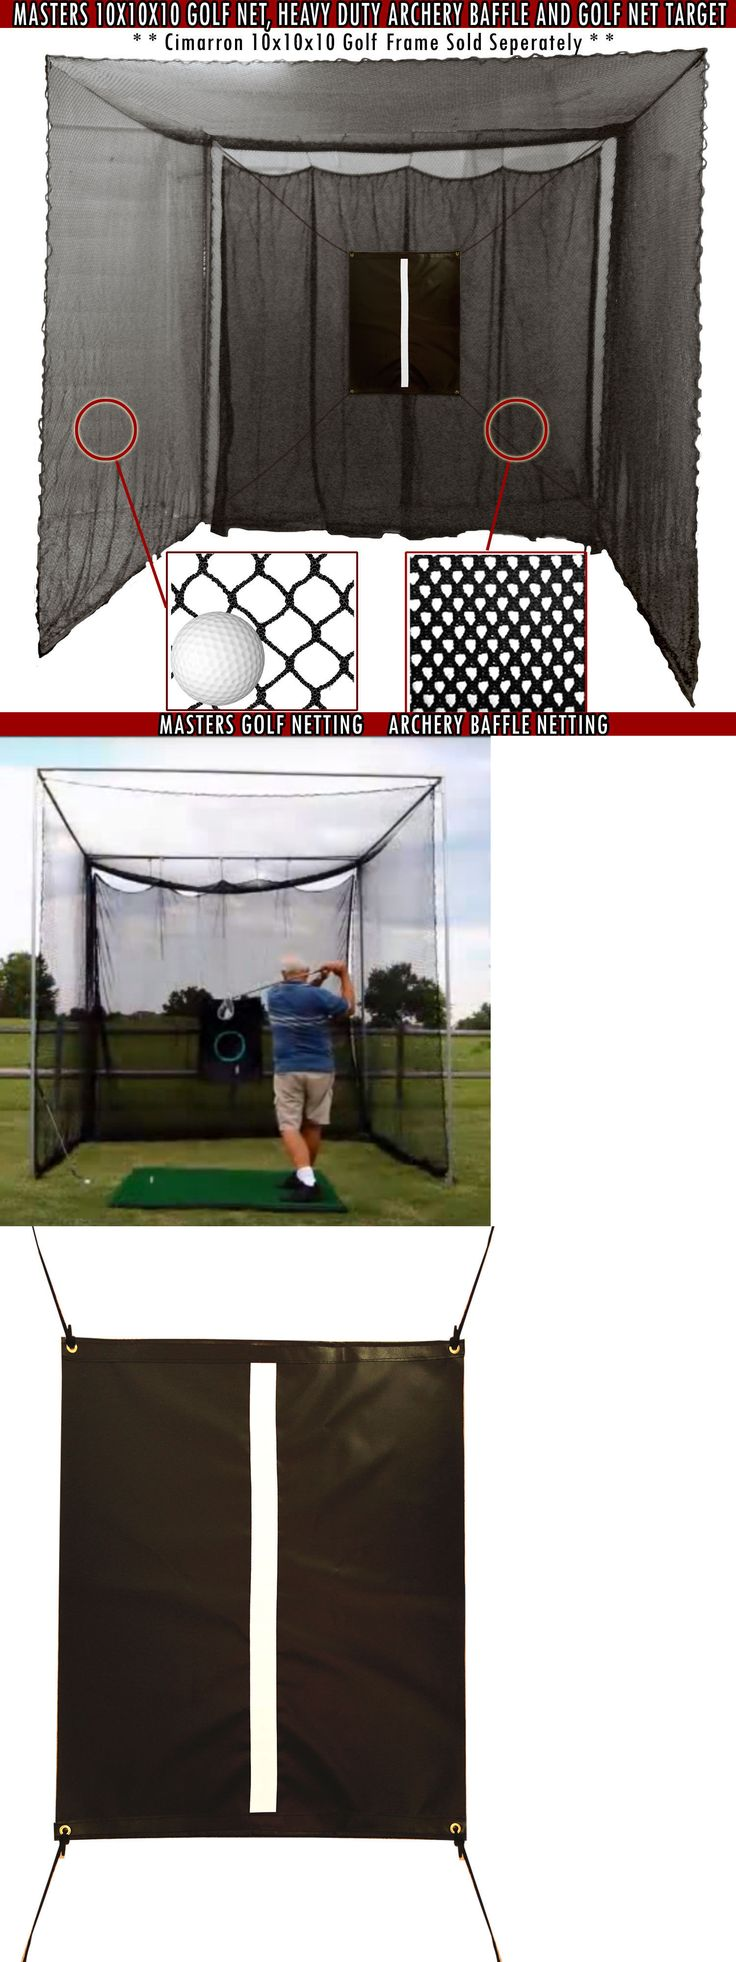 Nets Cages and Mats 50876: Golf Net Indoor Outdoor 10X10 Driving Practice Netting Training Aid W Baffle -> BUY IT NOW ONLY: $196.95 on eBay!